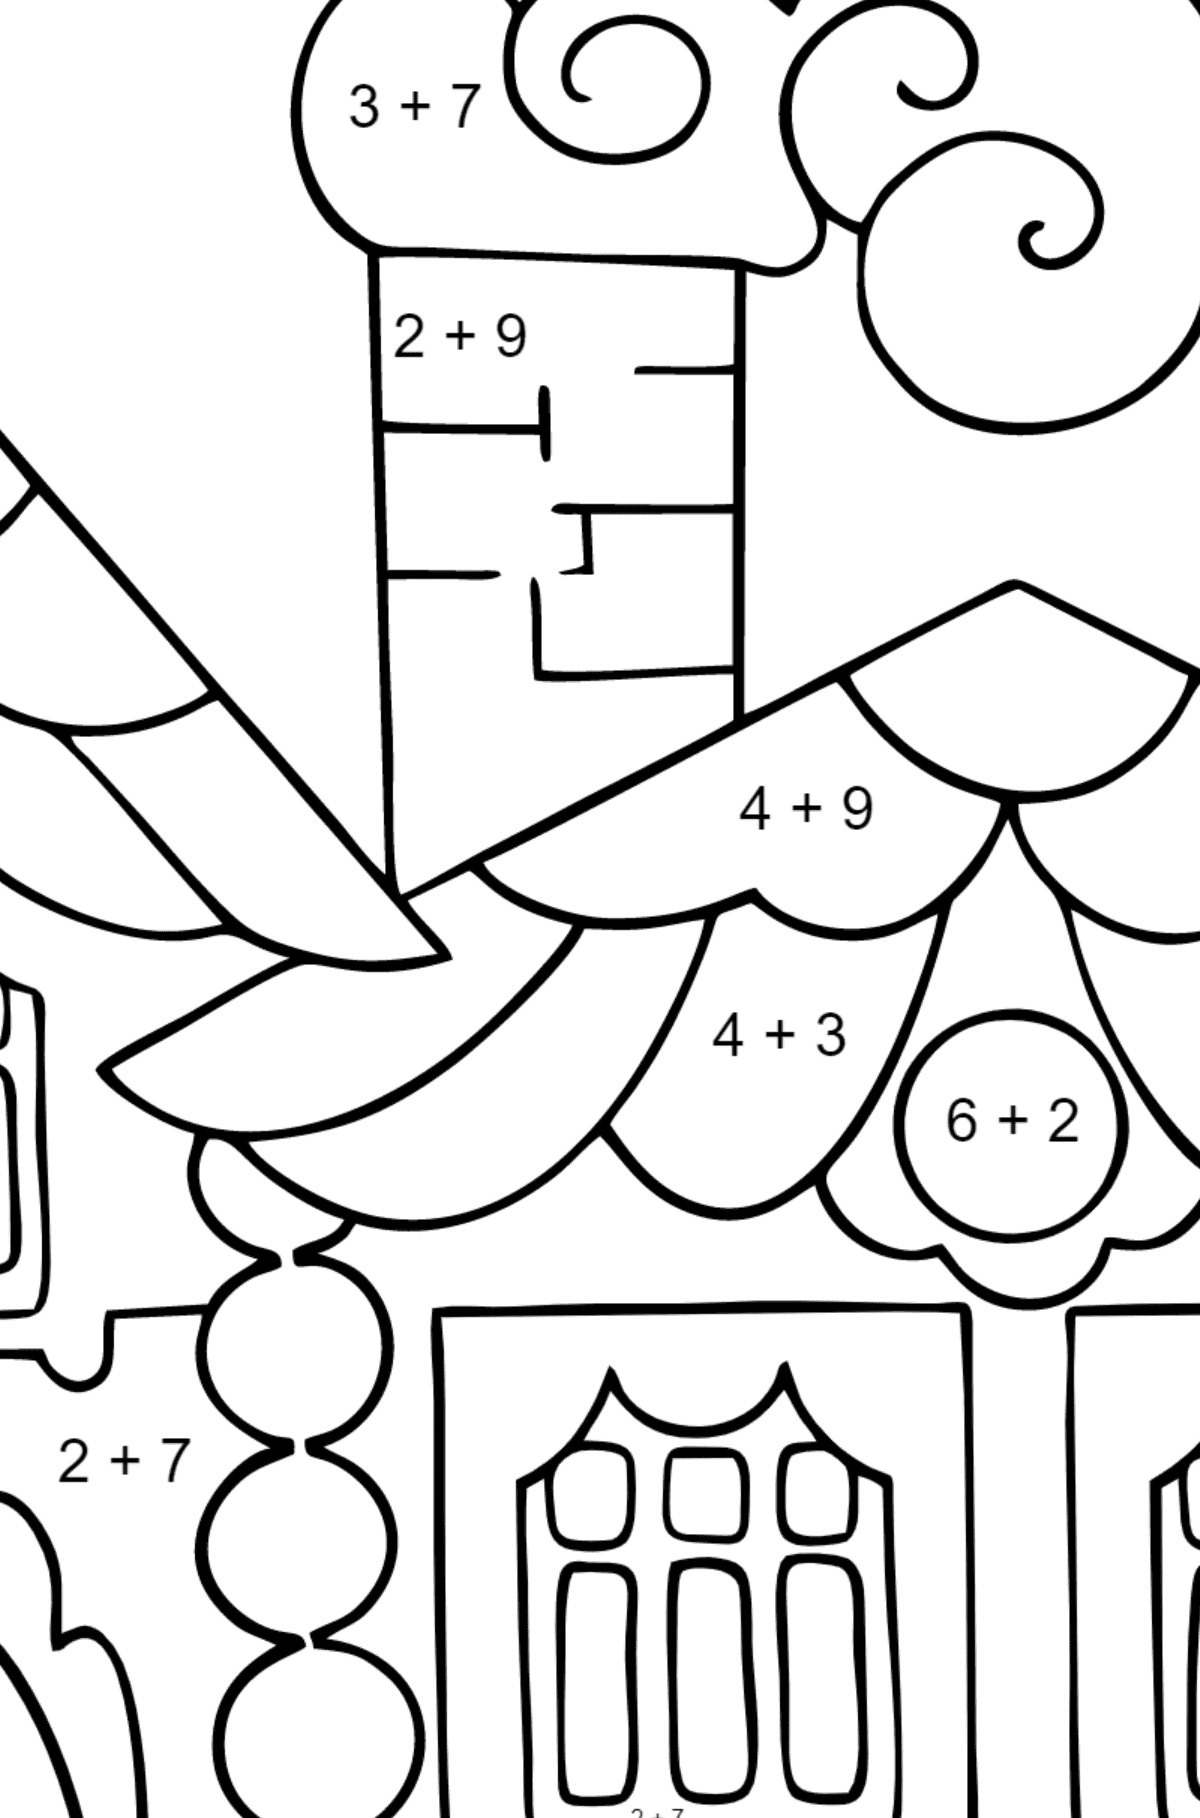 Simple Coloring Page - A House in the Forest - Math Coloring - Addition for Kids